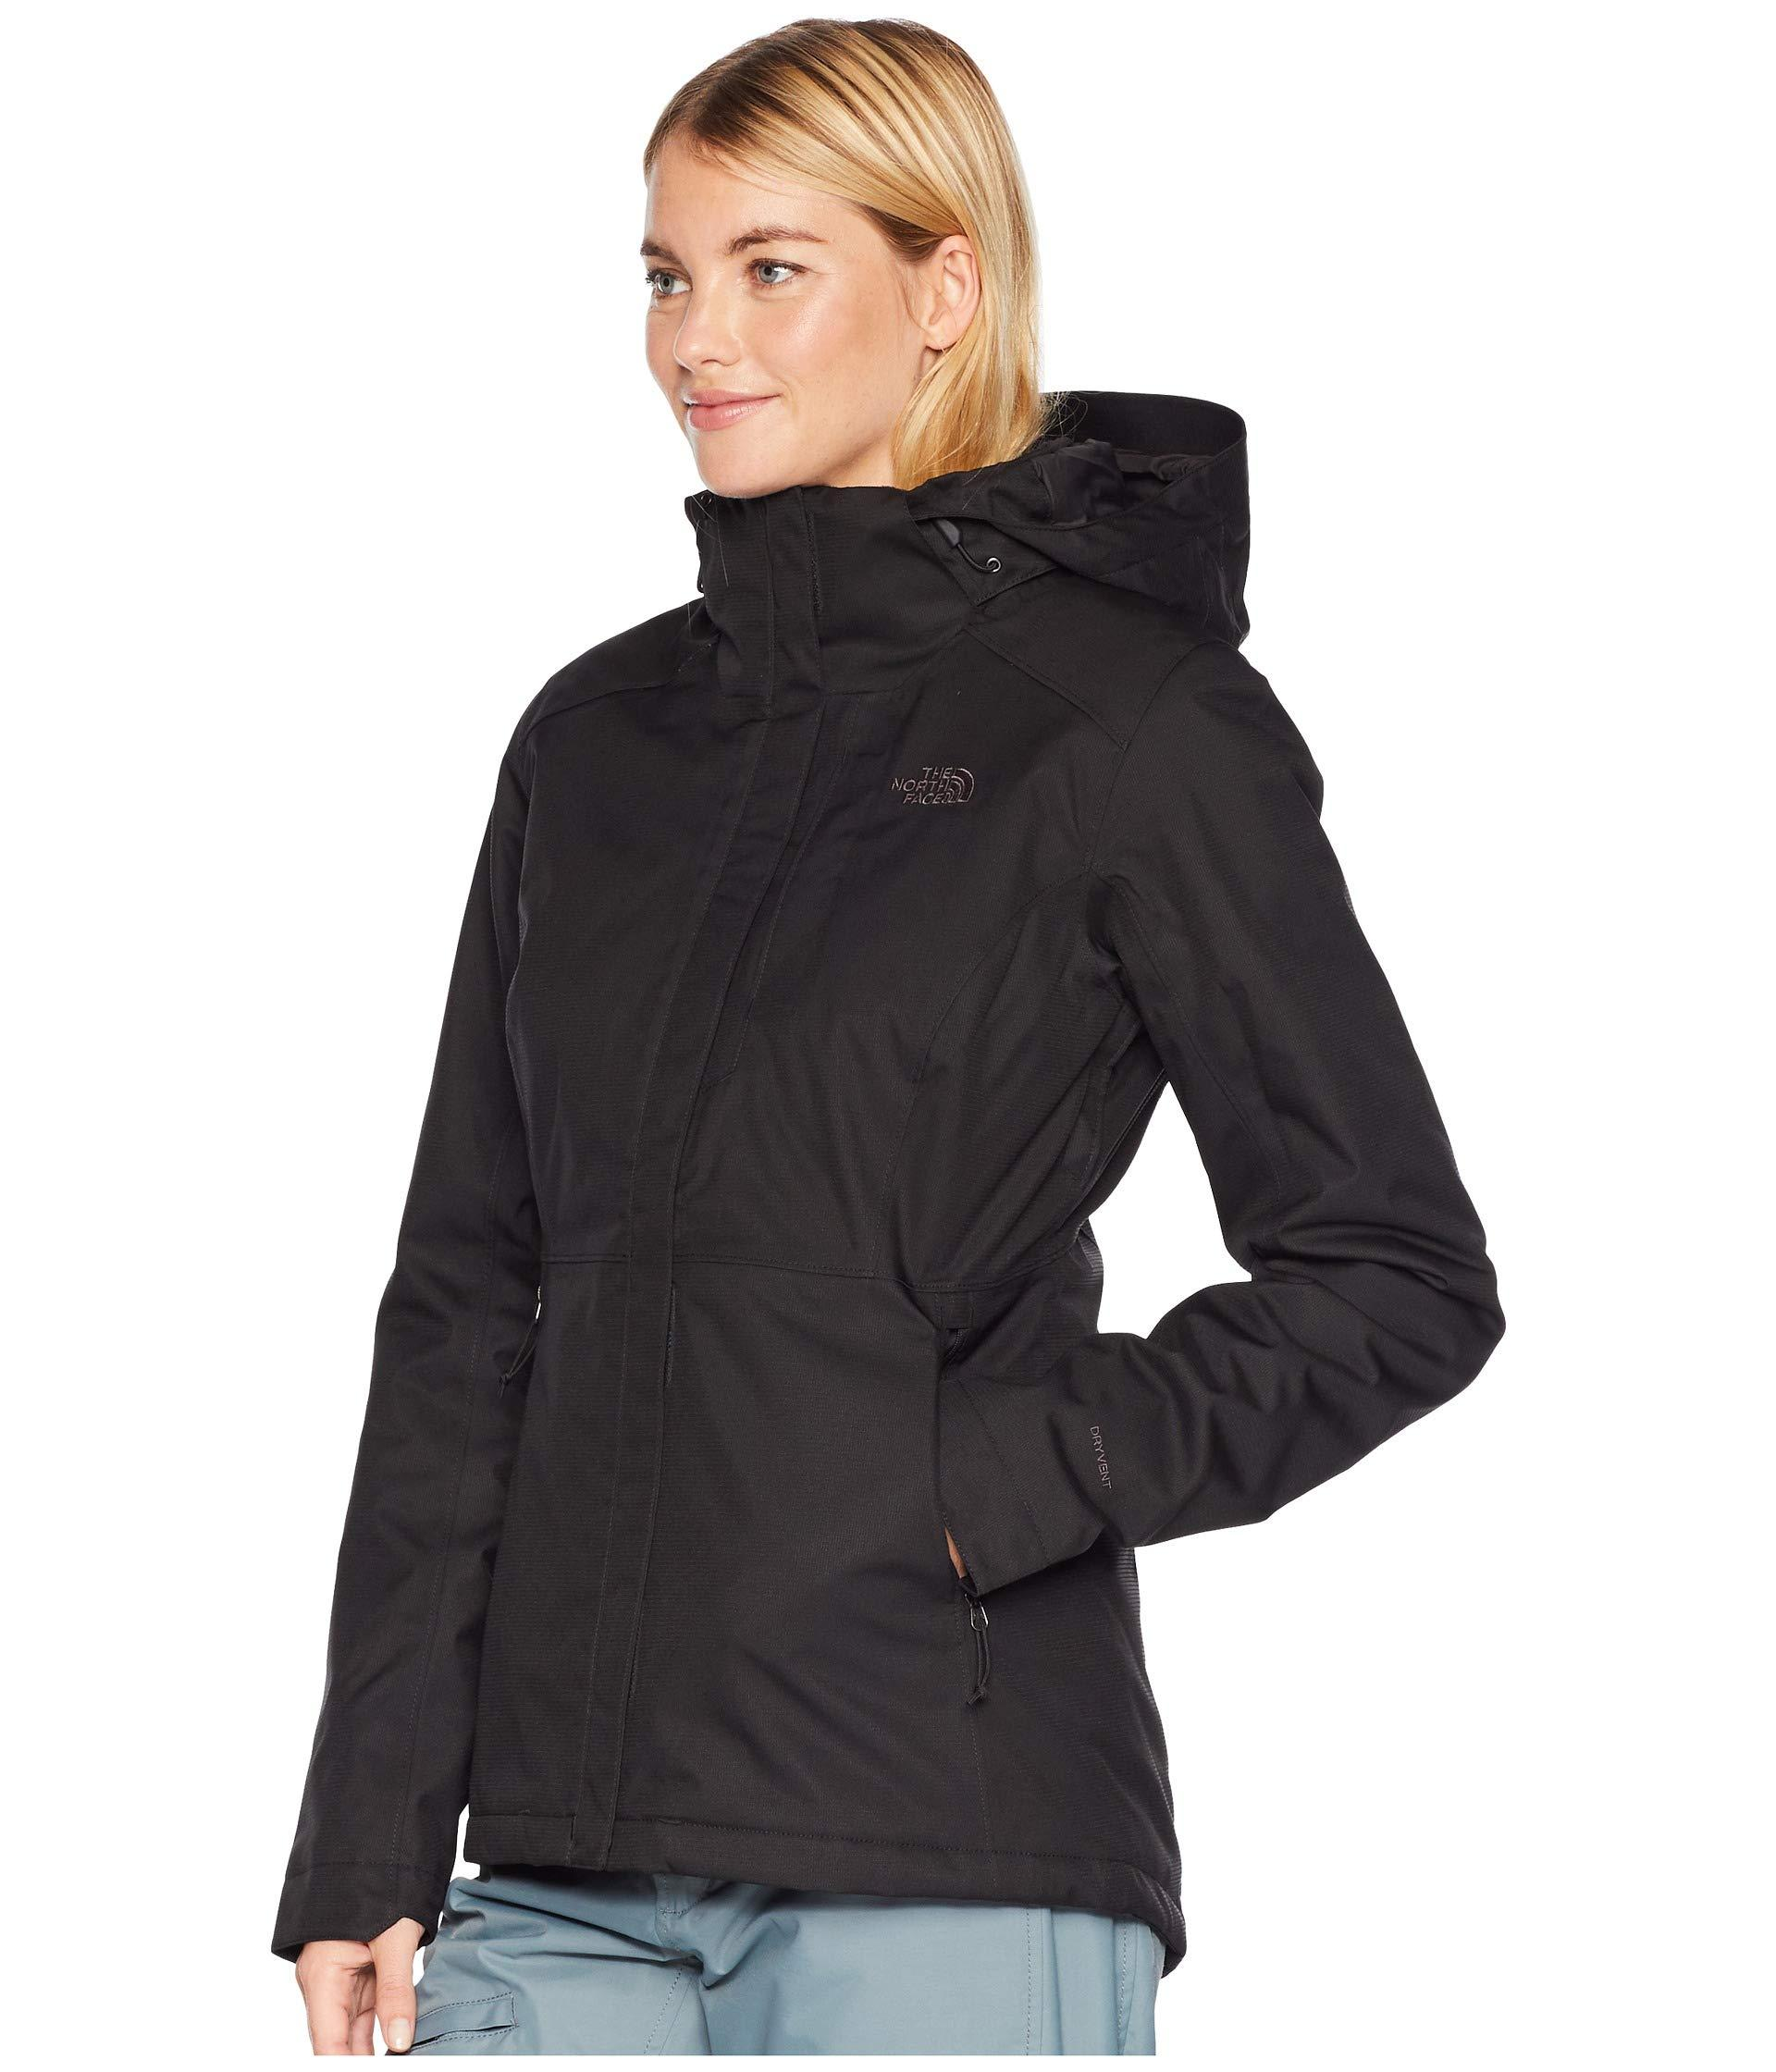 release date release date arriving Inlux 2.0 Insulated Jacket